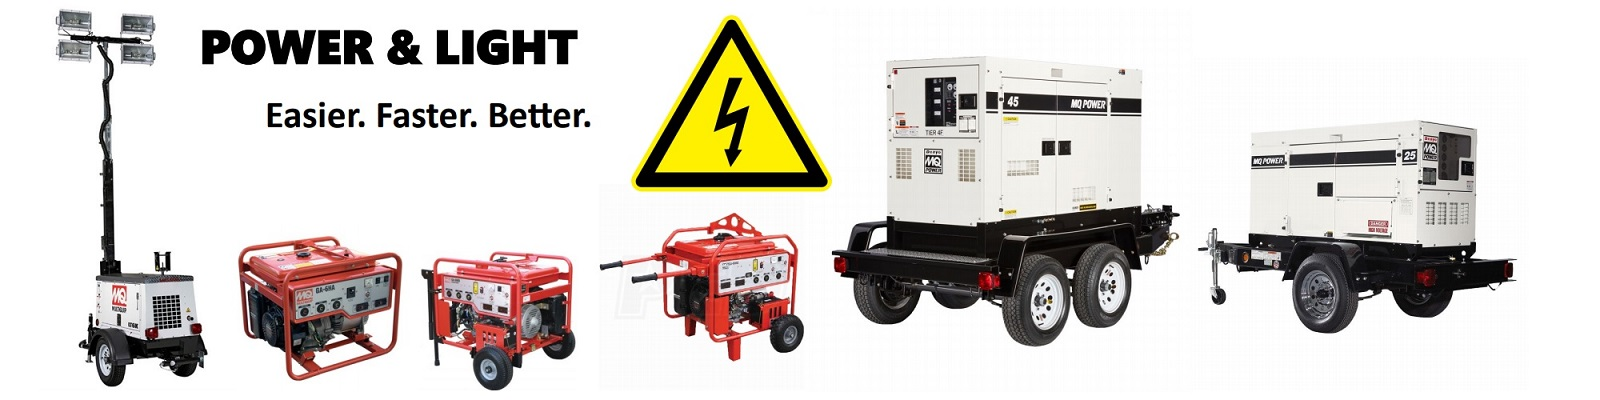 Best Equipment Rentals in North Central Montana